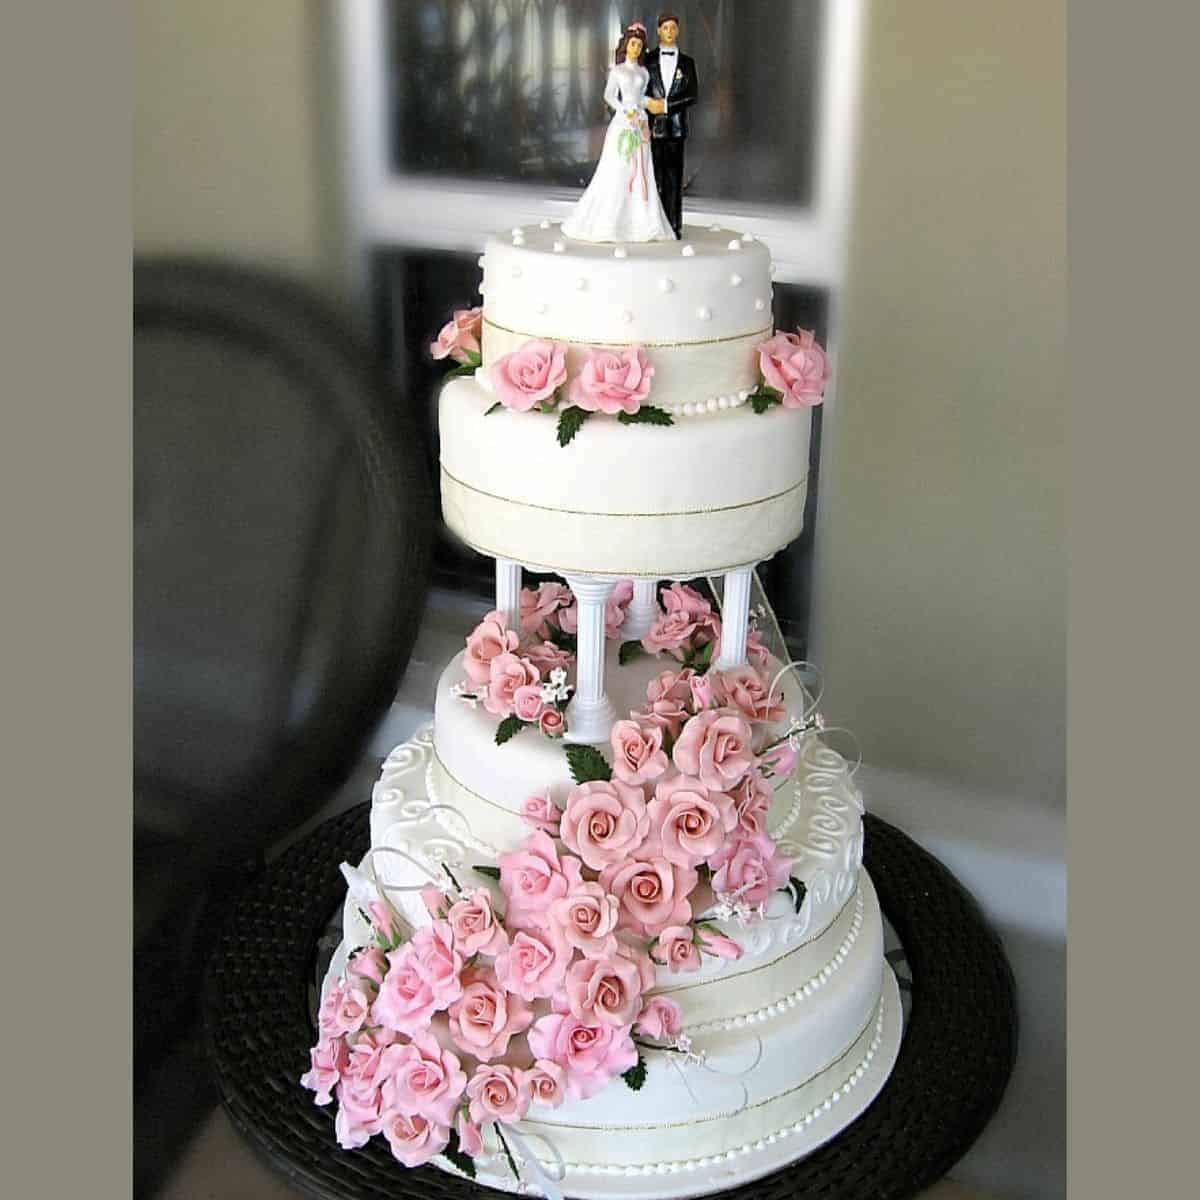 A 4 layer cake stacked on pillars, decorated with pink roses and a bride and groom topper